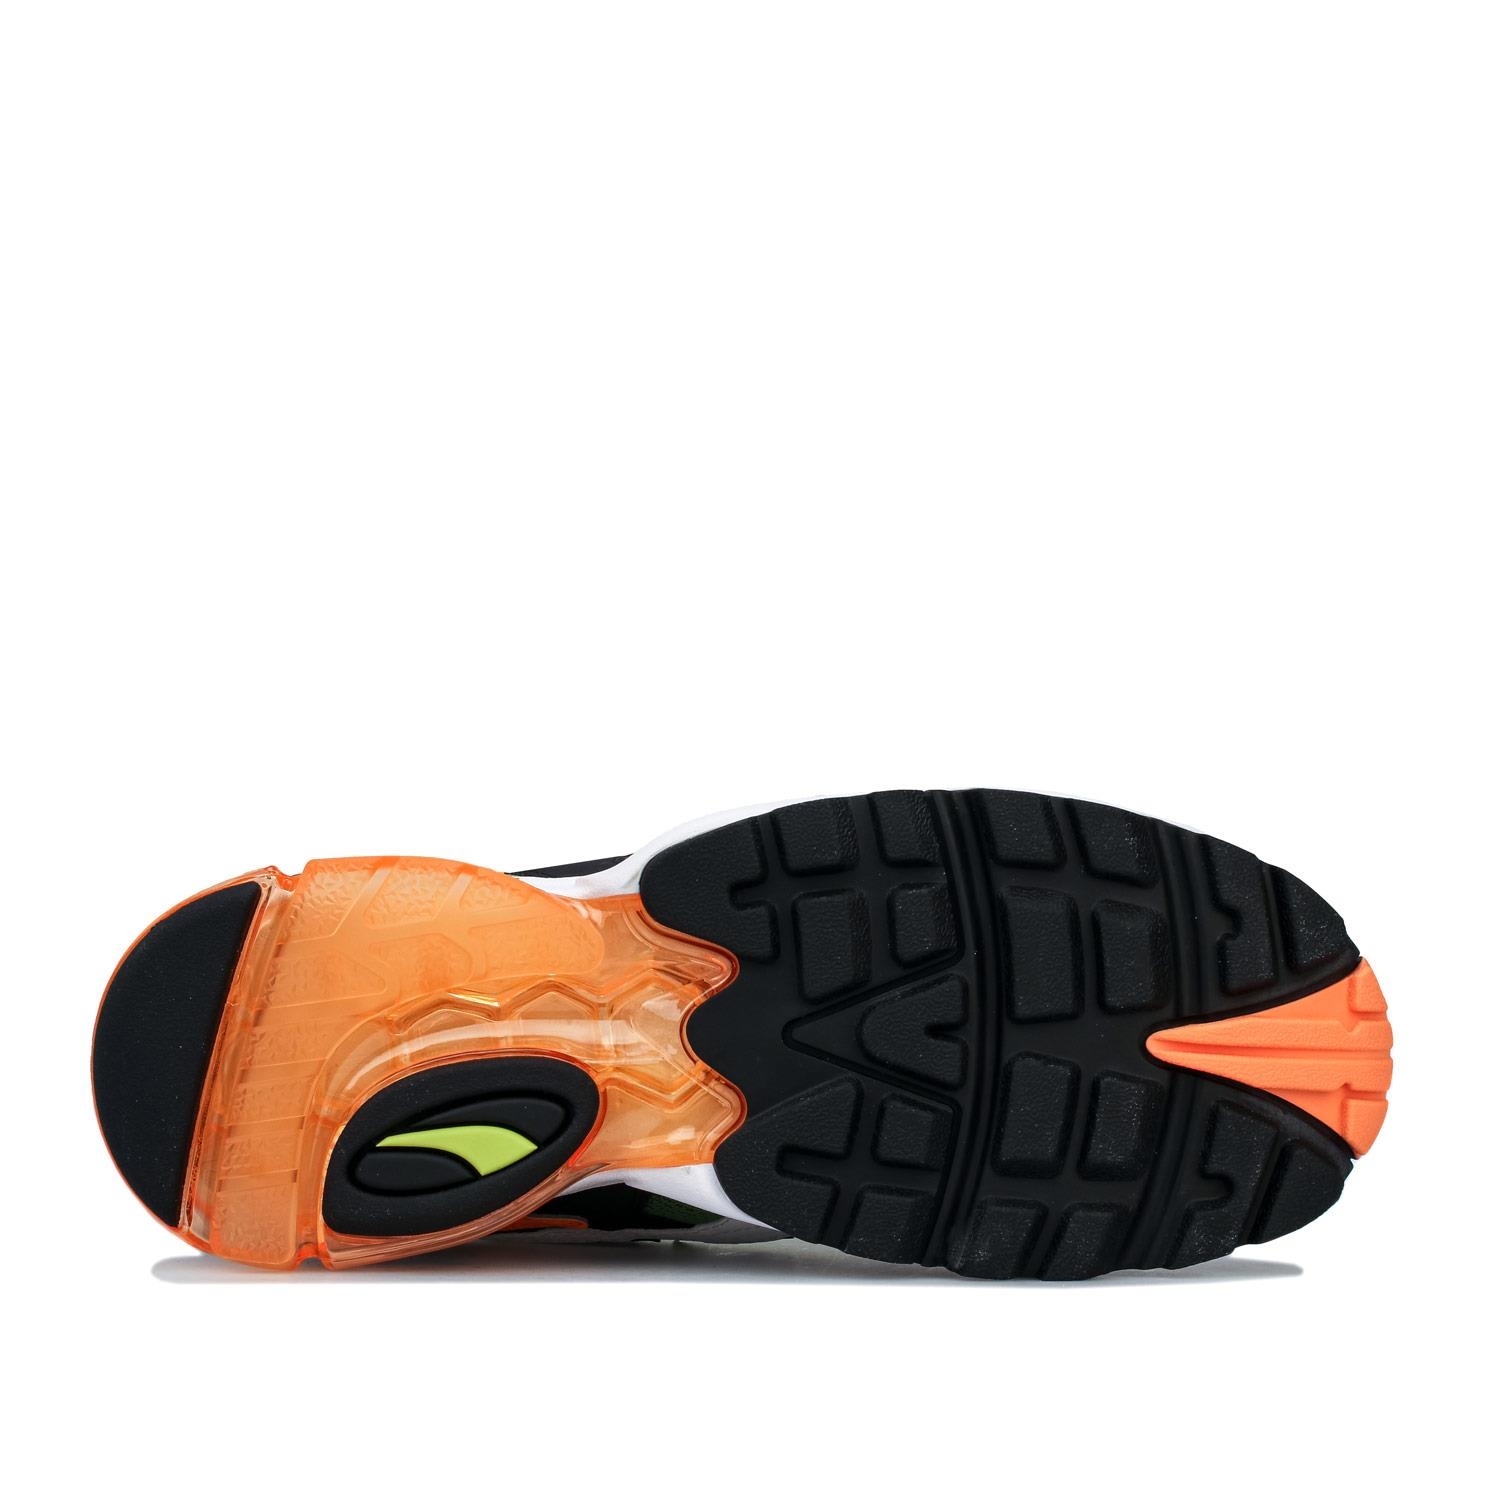 Mens-Puma-Cell-Alien-OG-Trainers-in-Blue-Green-Black-Red-Blue-and-Yellow thumbnail 23